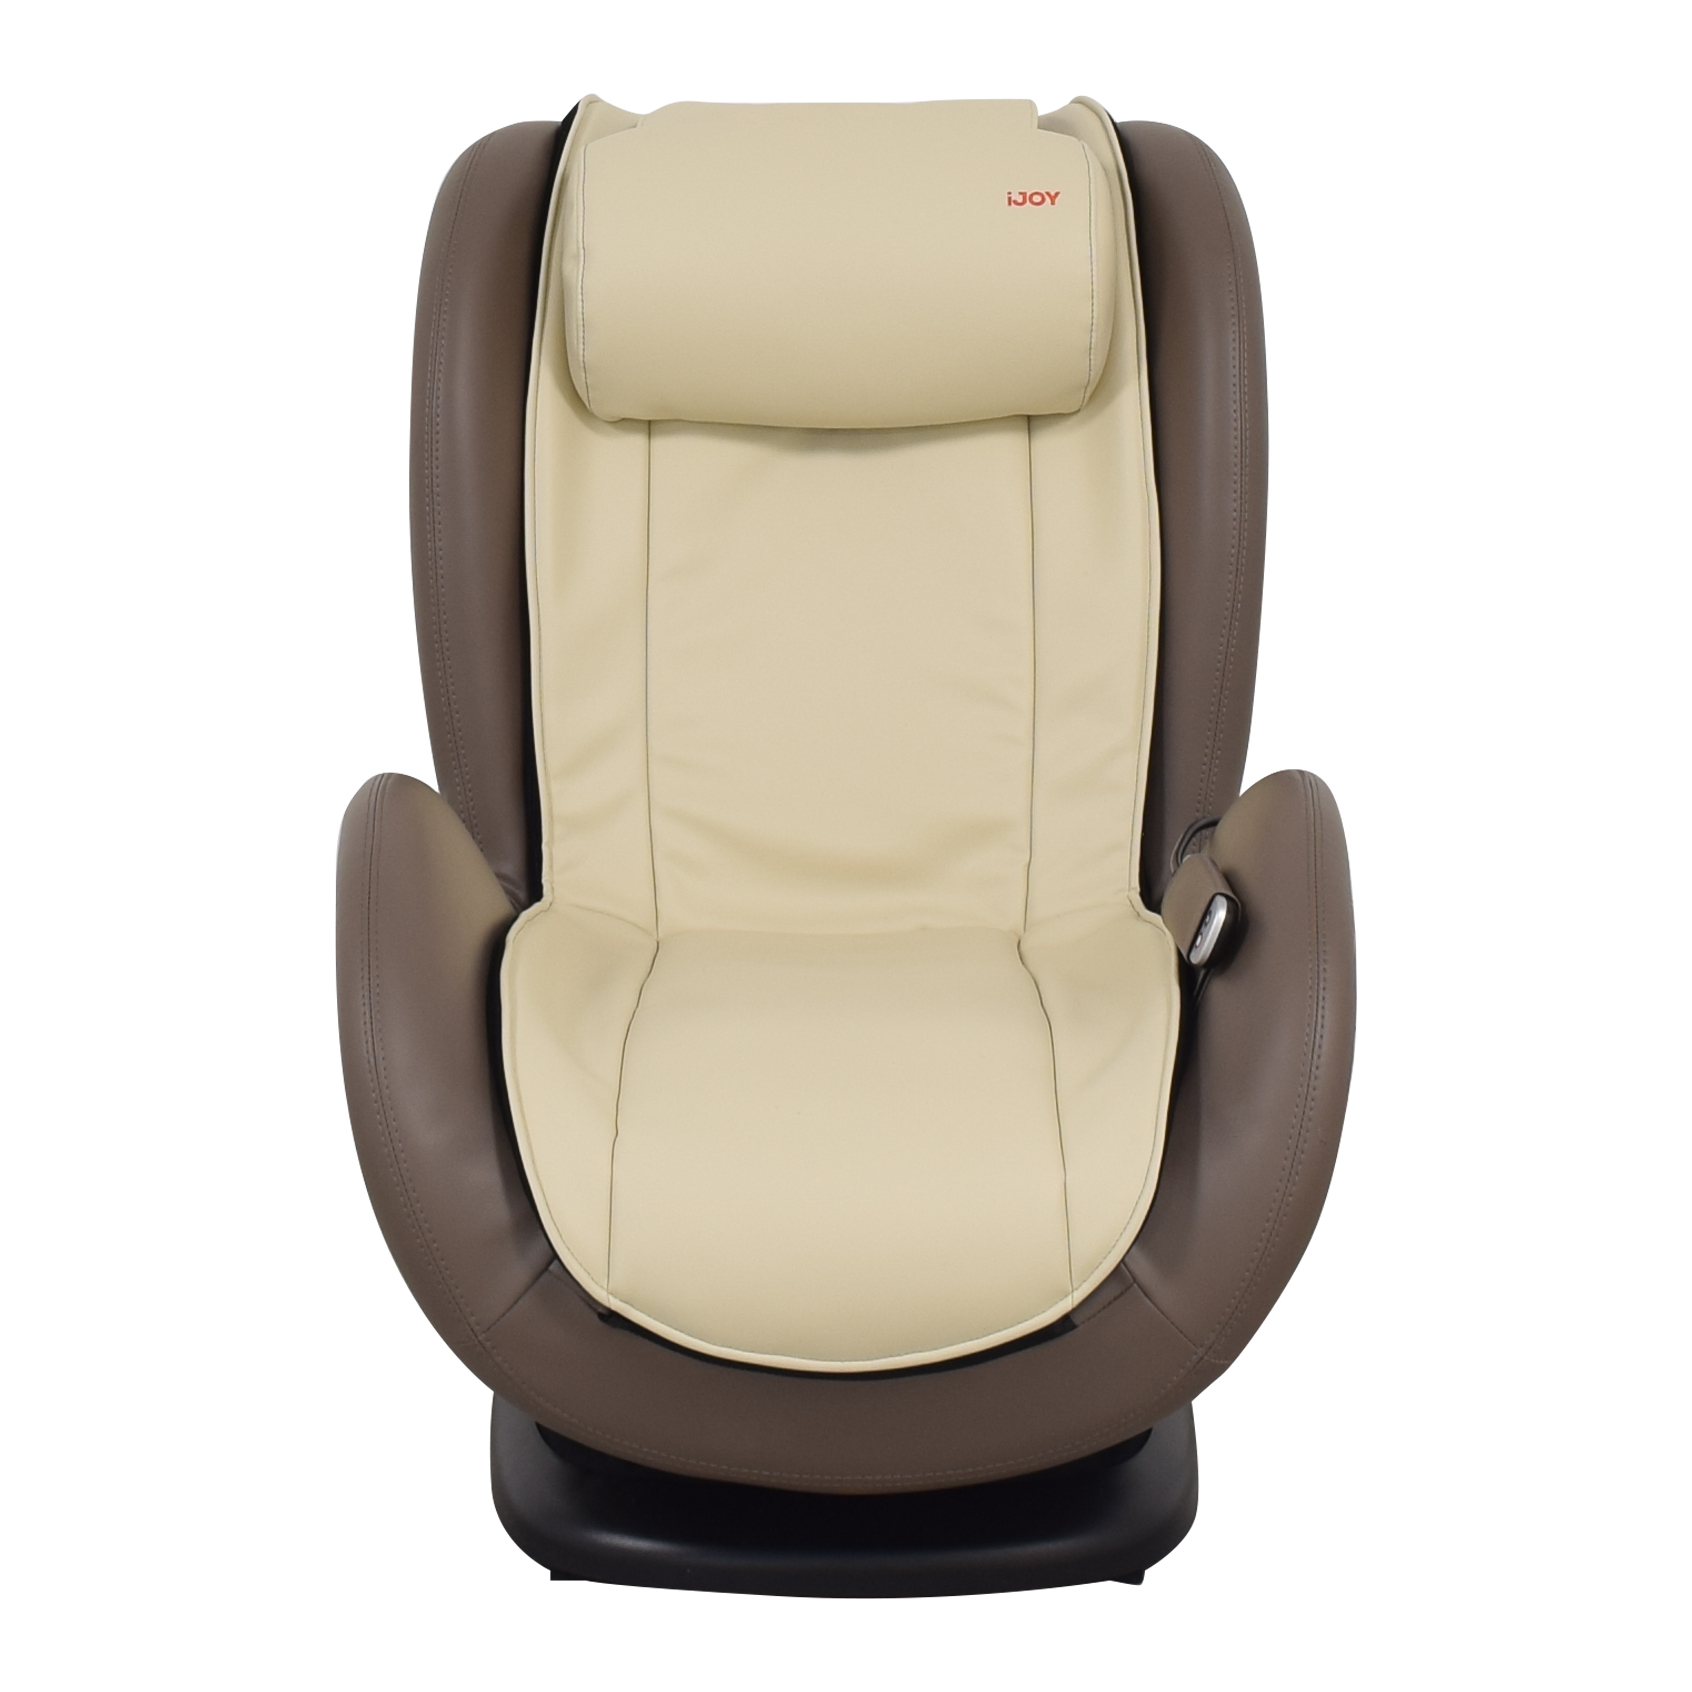 Human Touch Human Touch iJOY Massage Chair 4.0 price